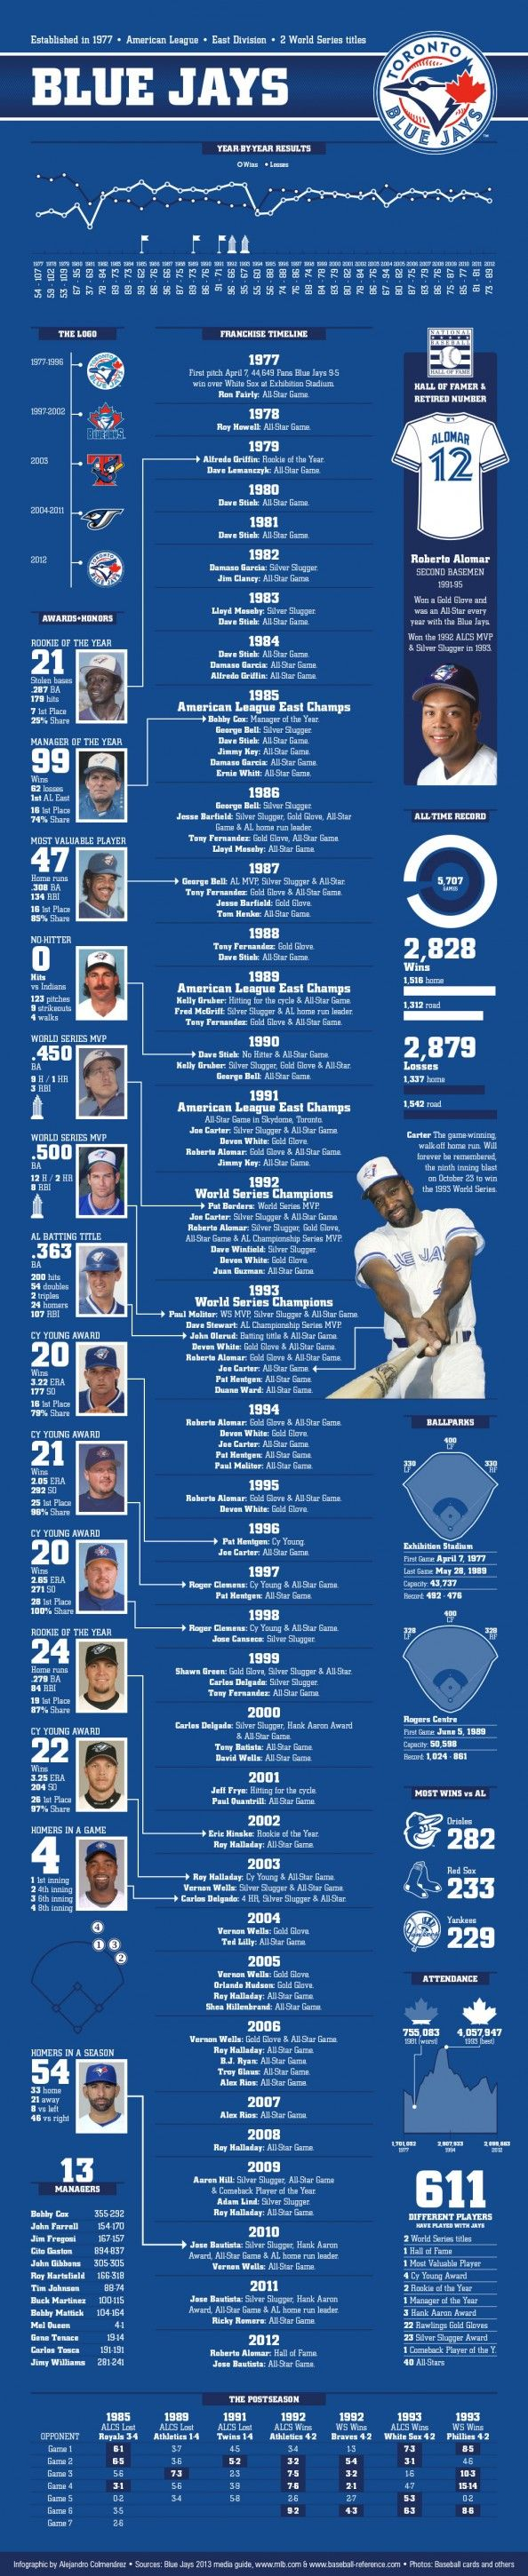 Toronto Blue Jays Franchise History via http://visual.ly/toronto-blue-jays